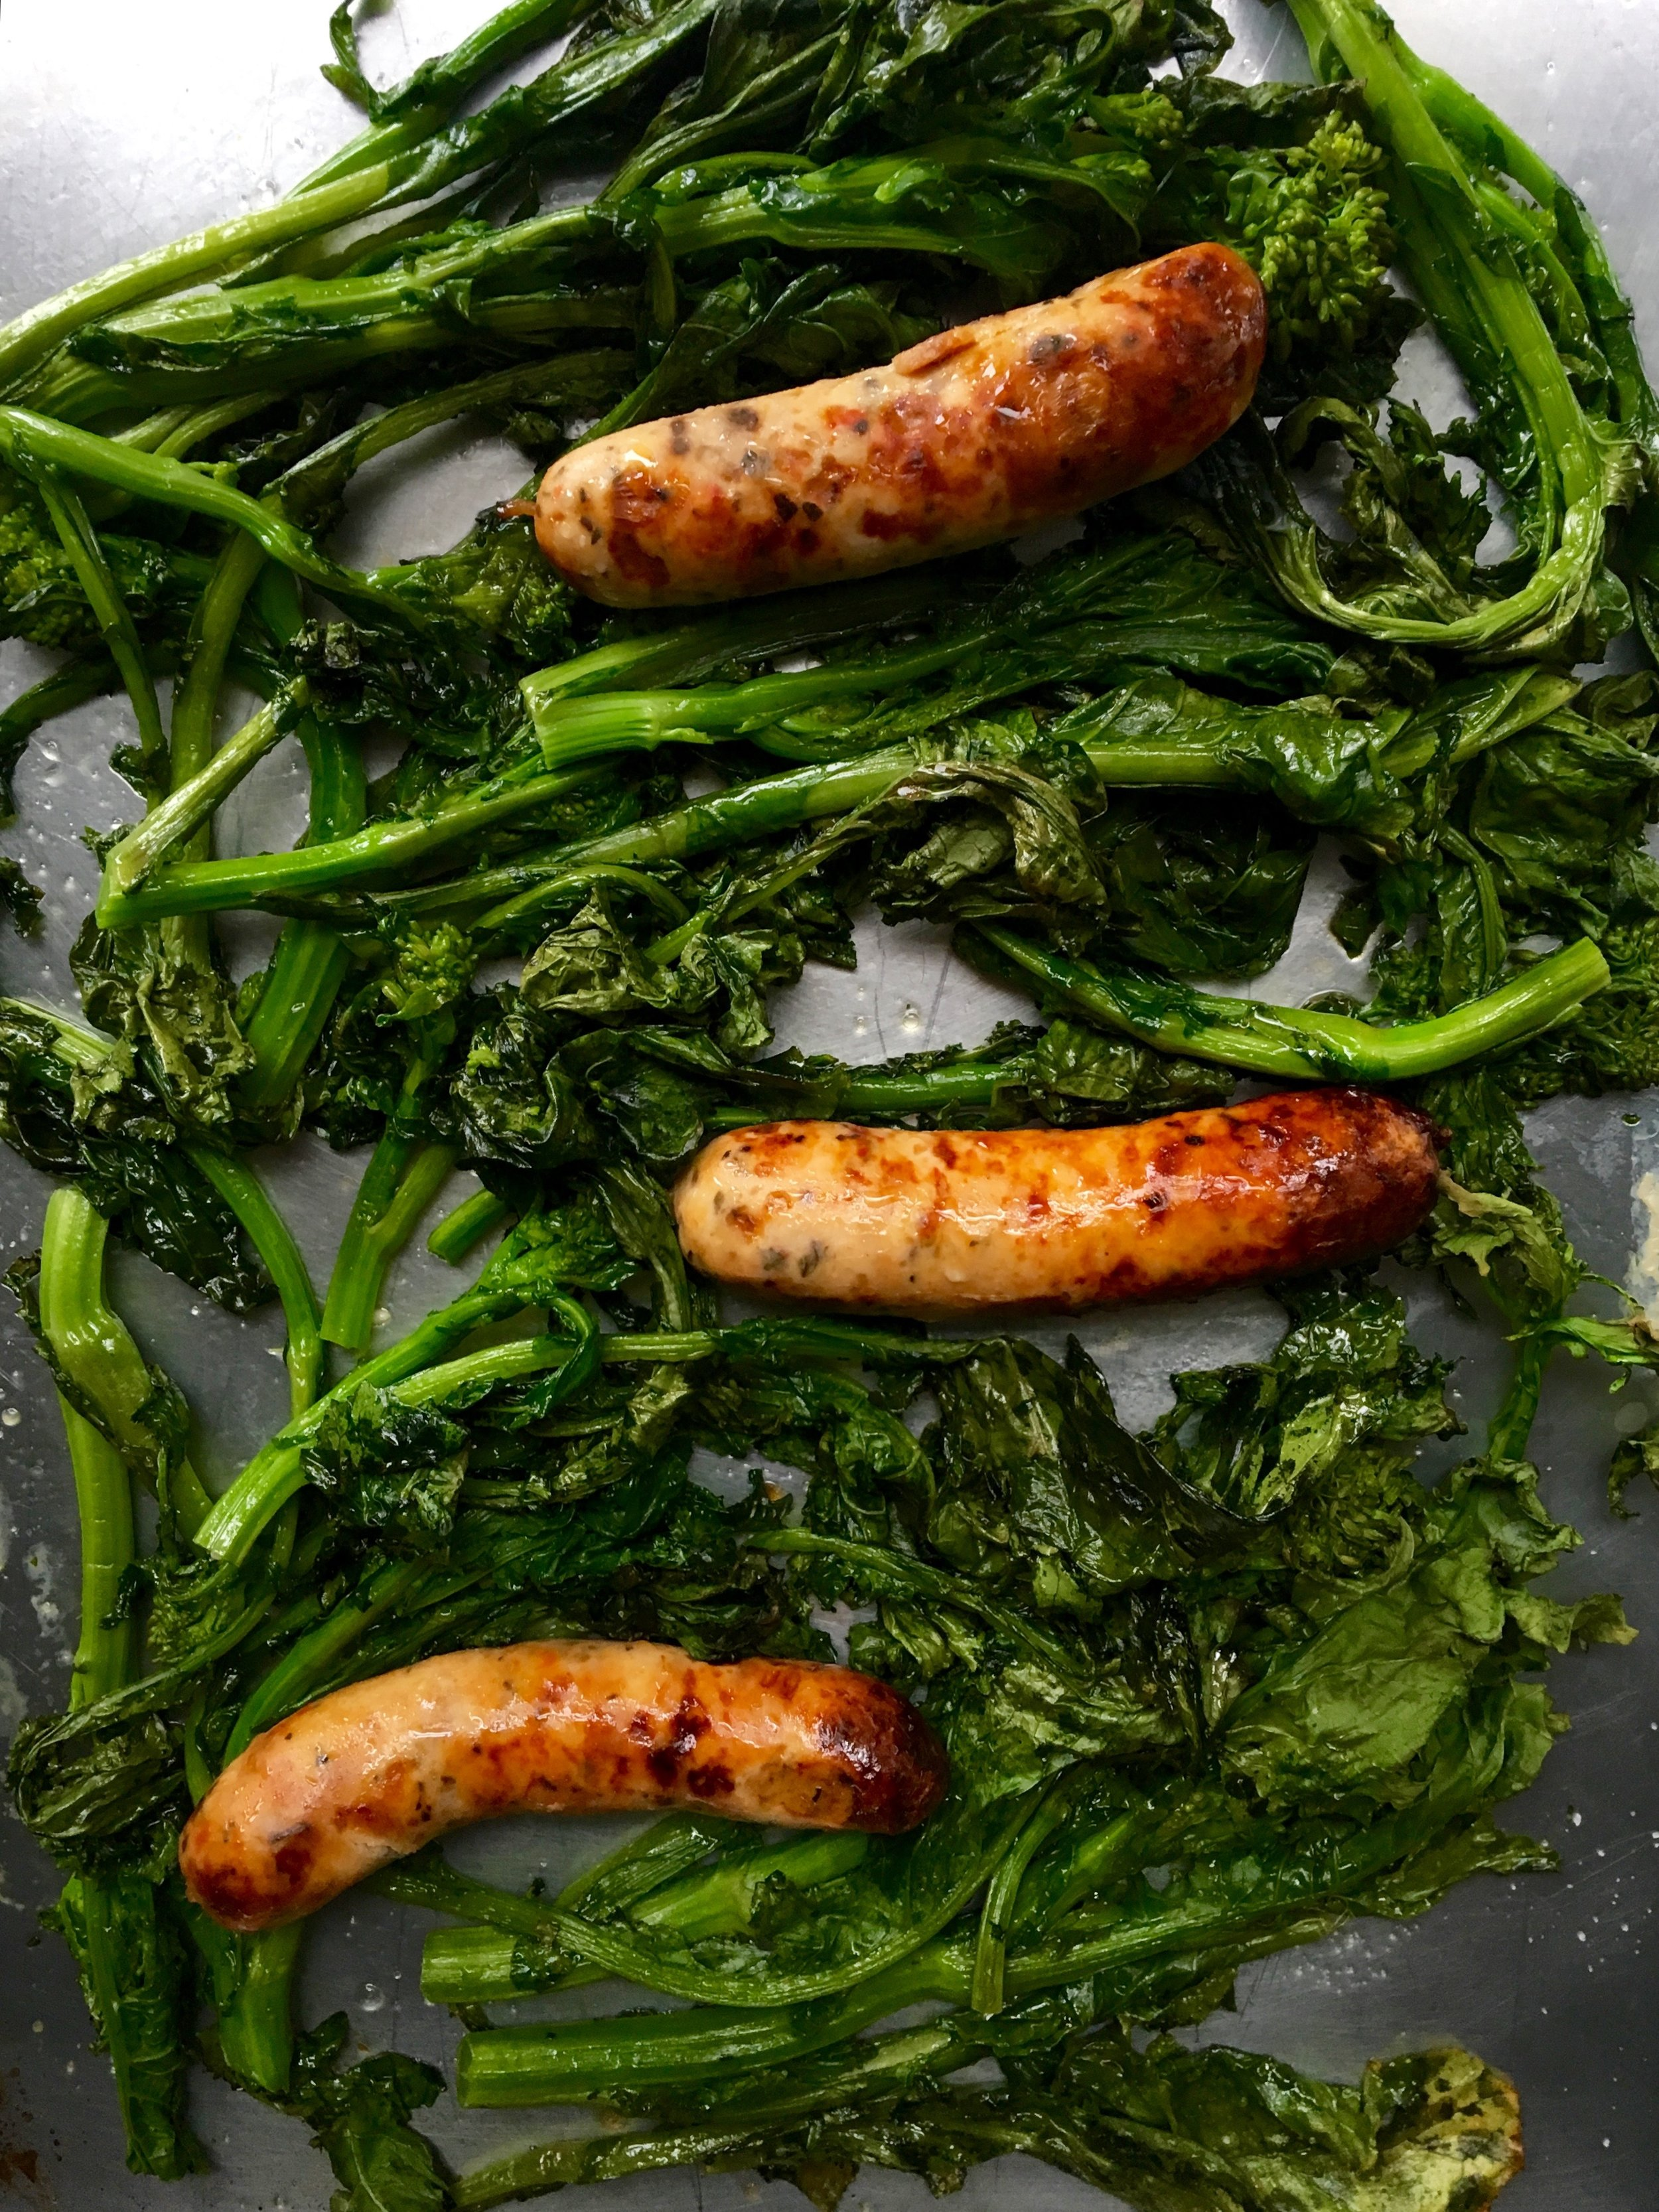 broccoli rabe with chicken sausage